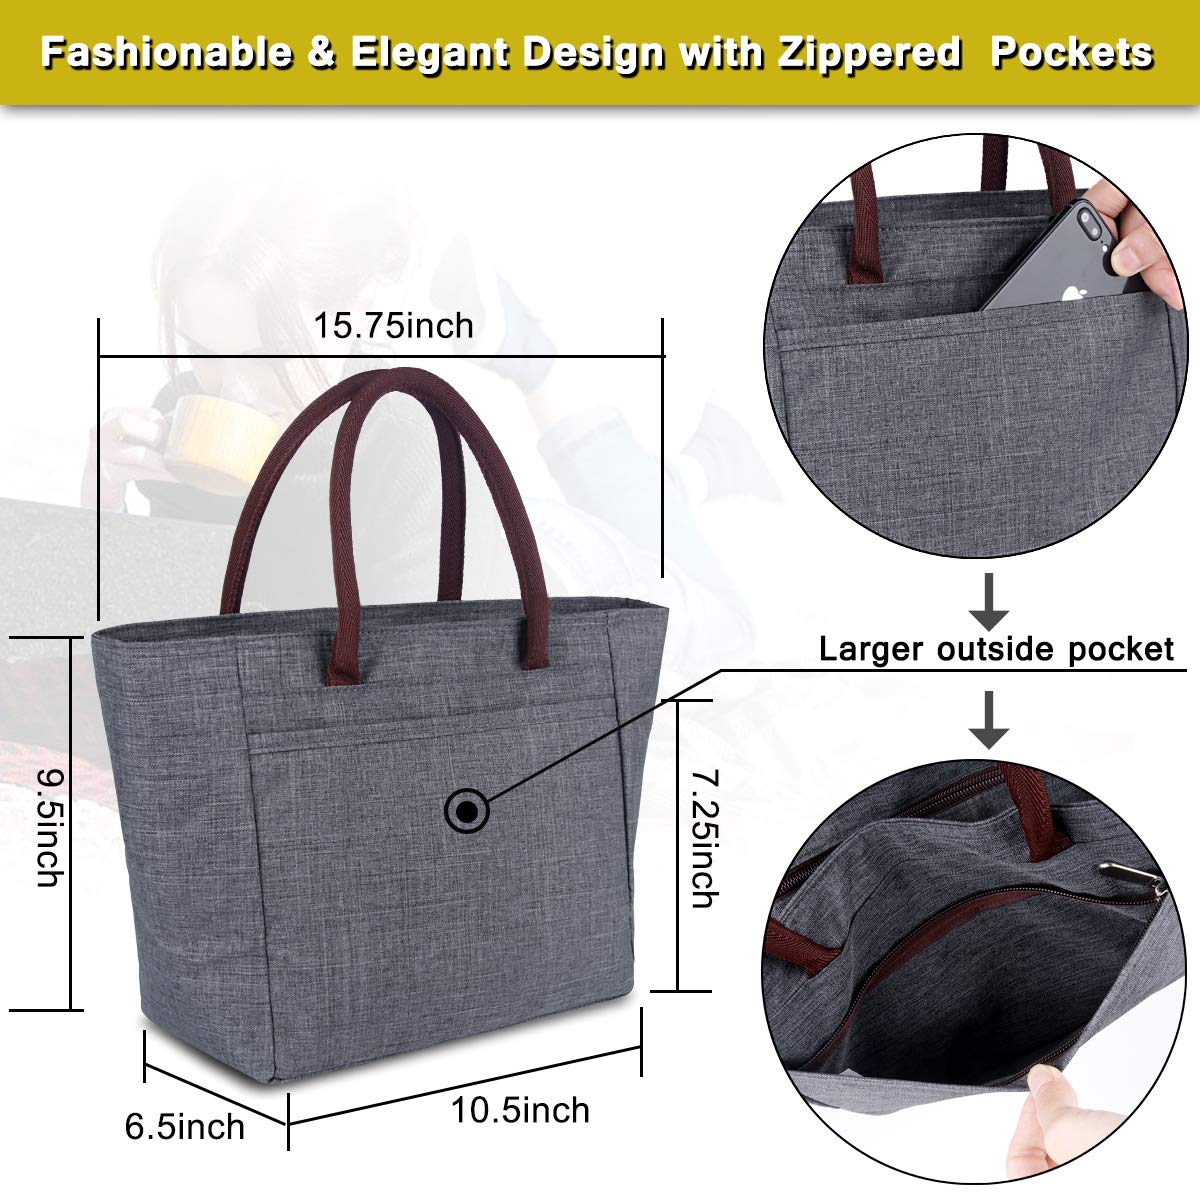 BALORAY Insulated Lunch Bag Leak-proof Cooler Bag lunch bag for Women Lunch Tote Bag For Kids & Adults (G-215 Grey) by BALORAY (Image #4)